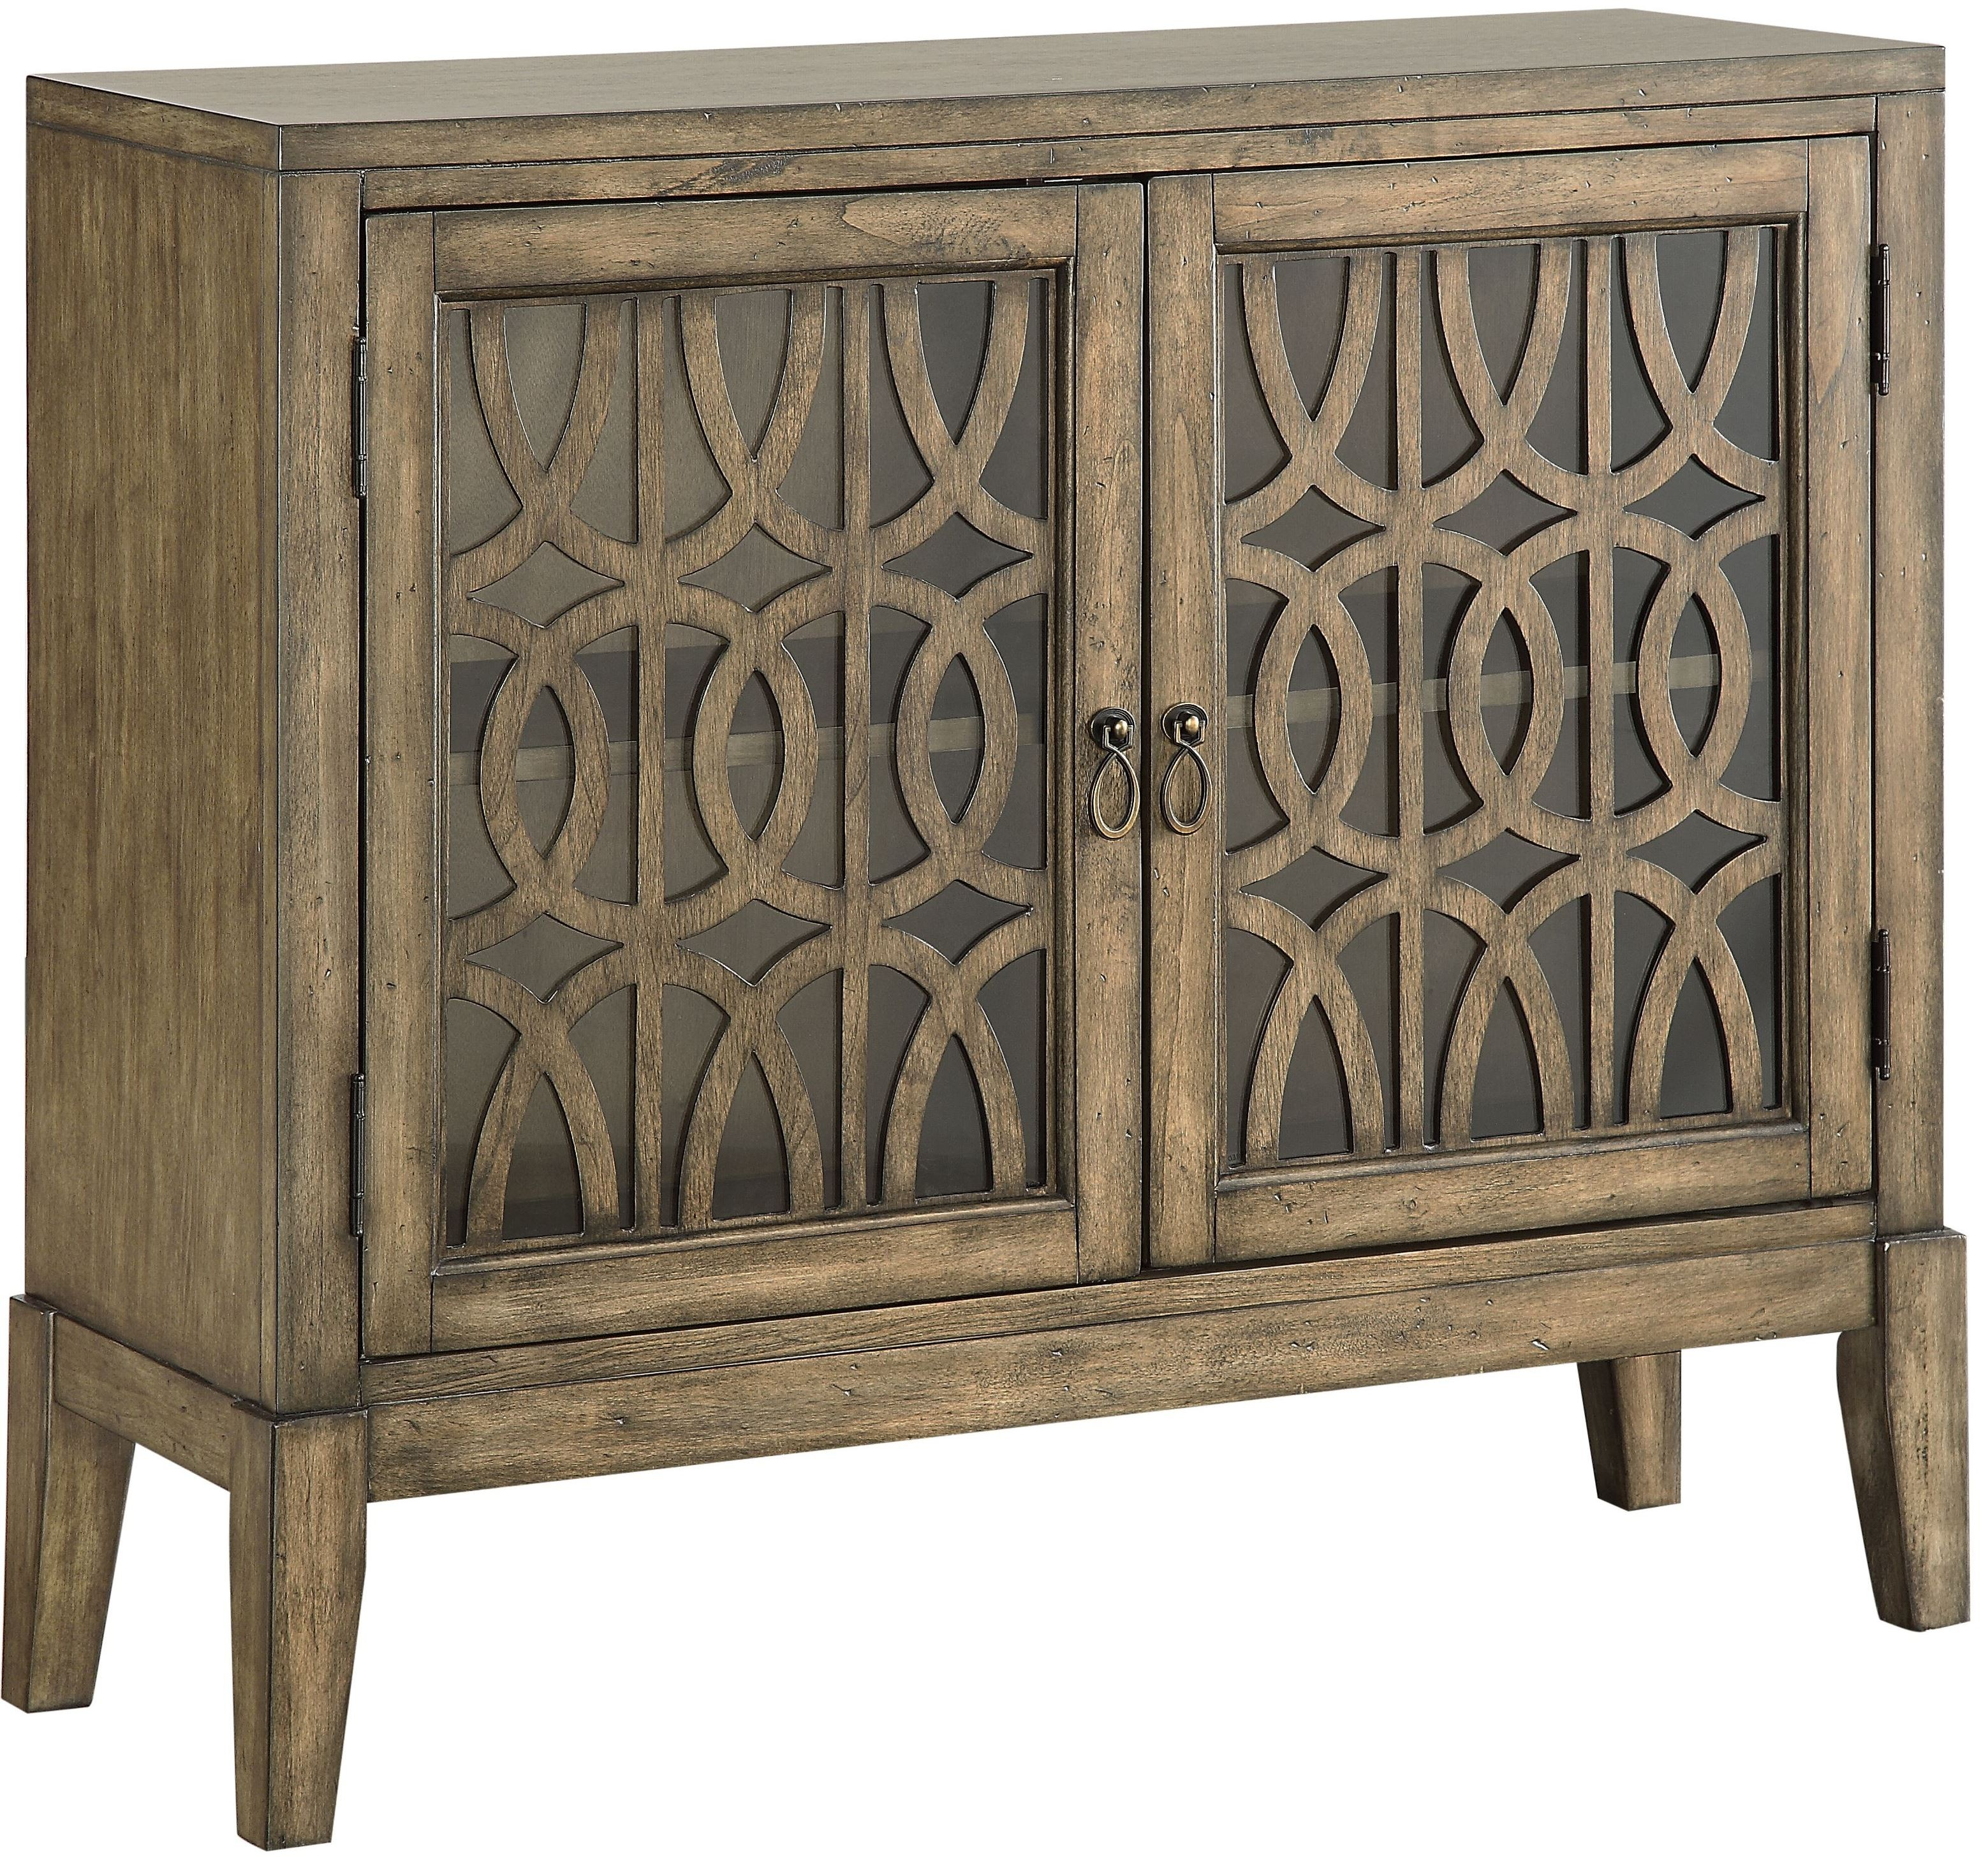 Distressed Kitchen Cabinet Doors: Distressed Parchment 2 Door Cabinet From Coast To Coast